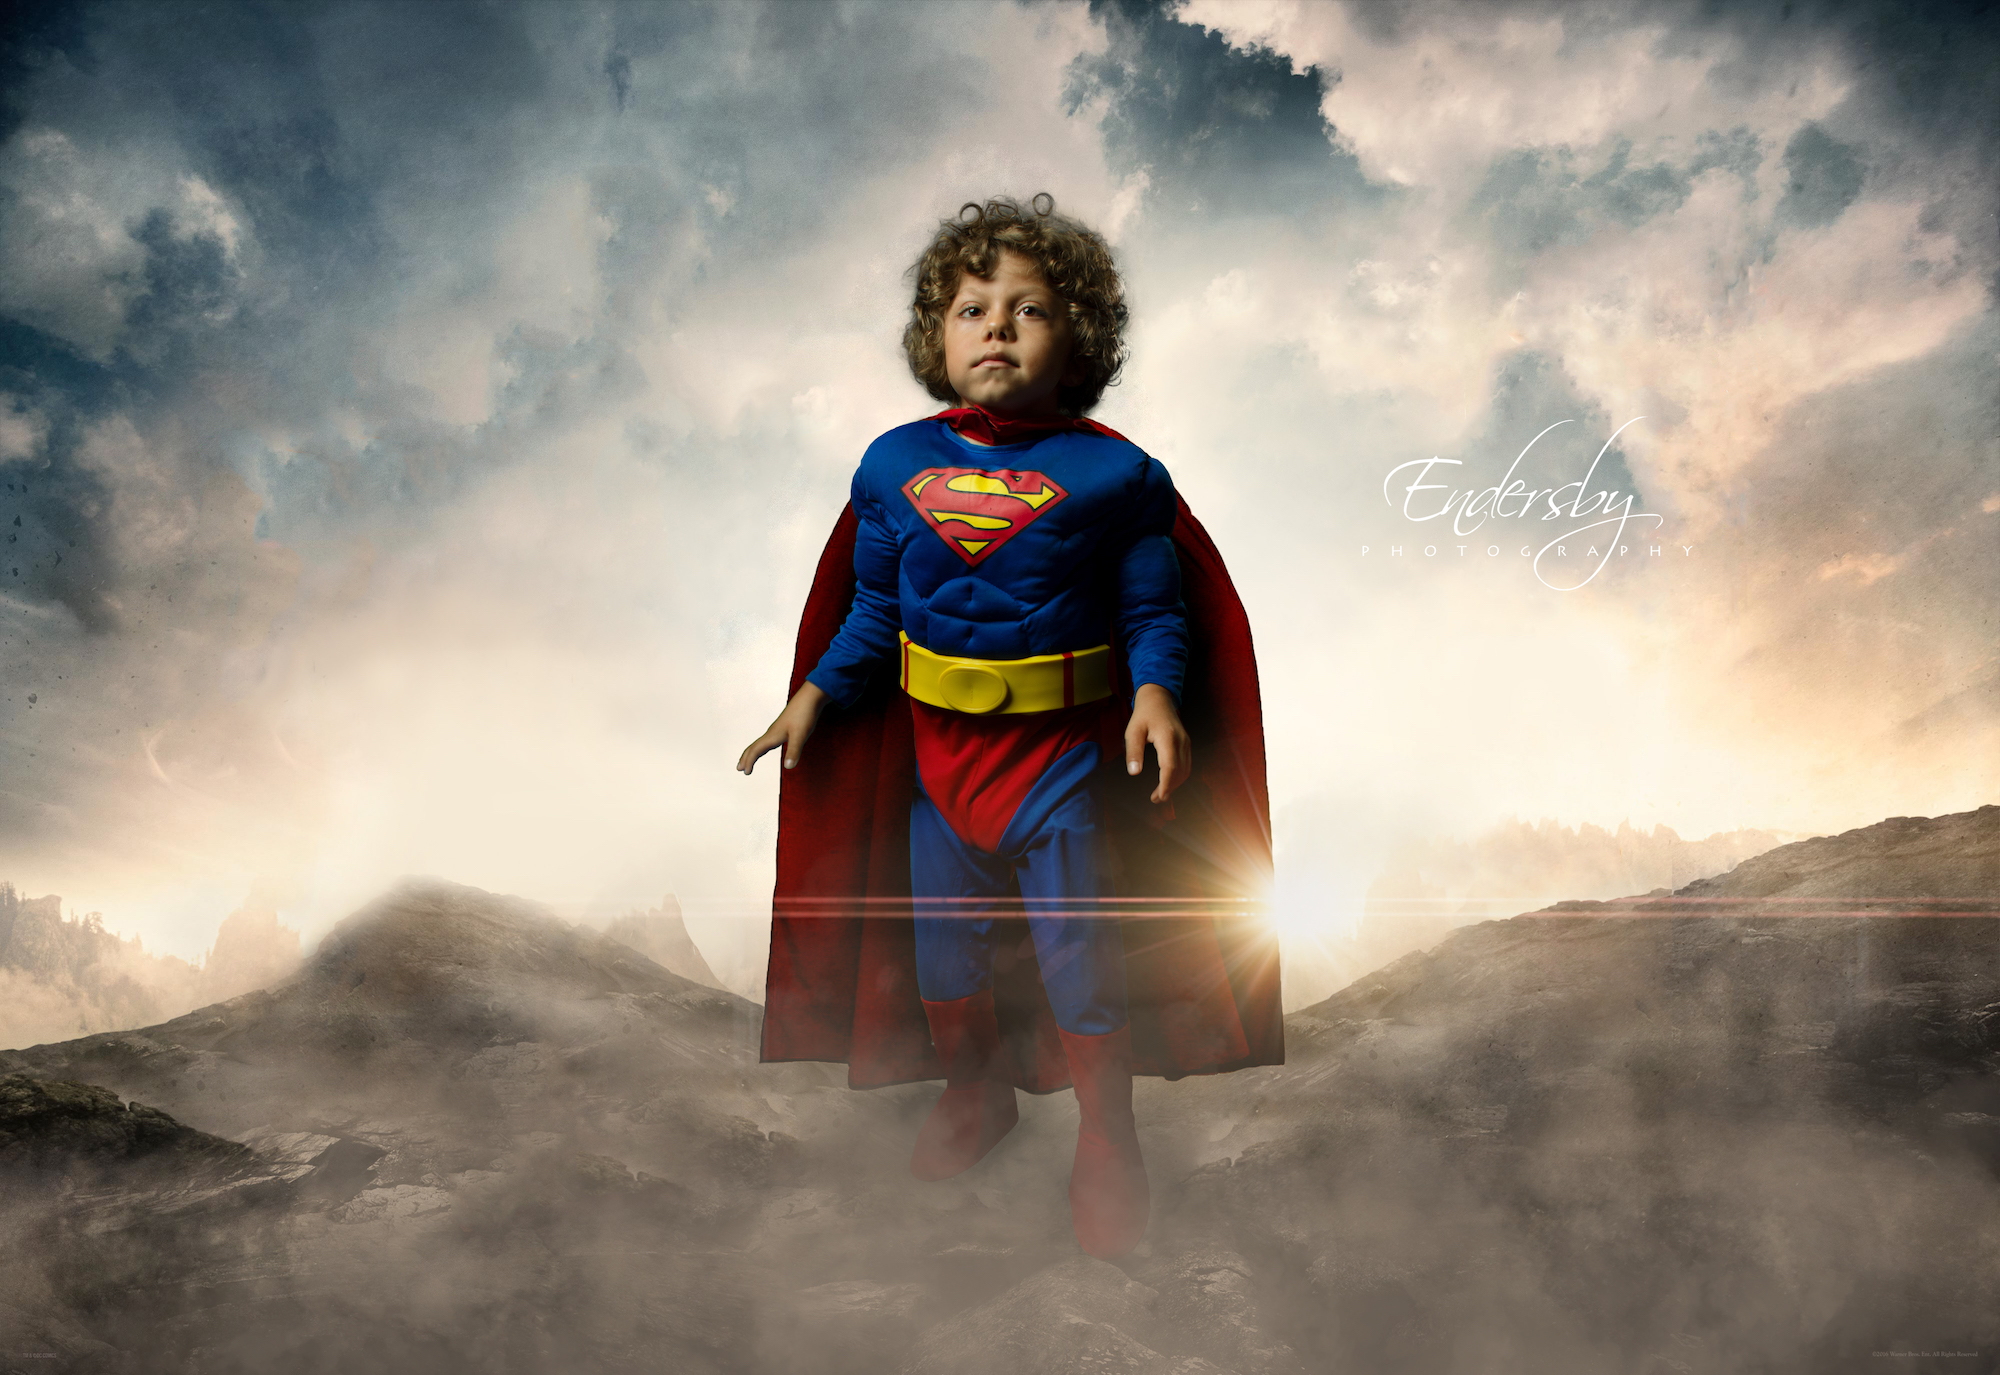 Hero Image - Child dressed as Superman